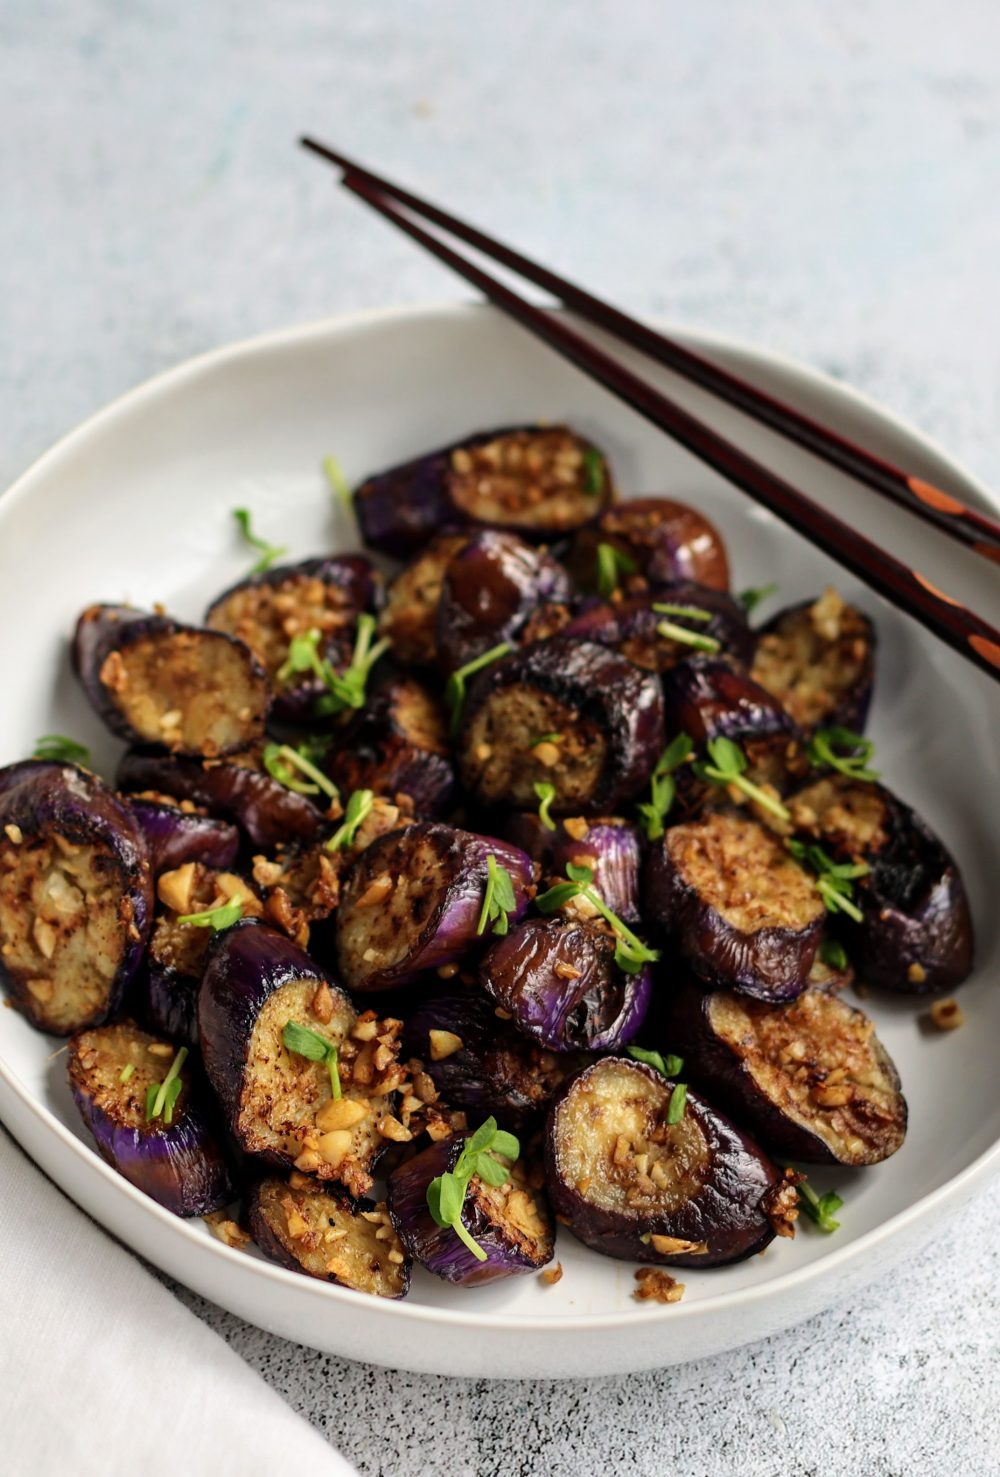 Stir-fried Japanese Eggplant with Garlic and Ginger